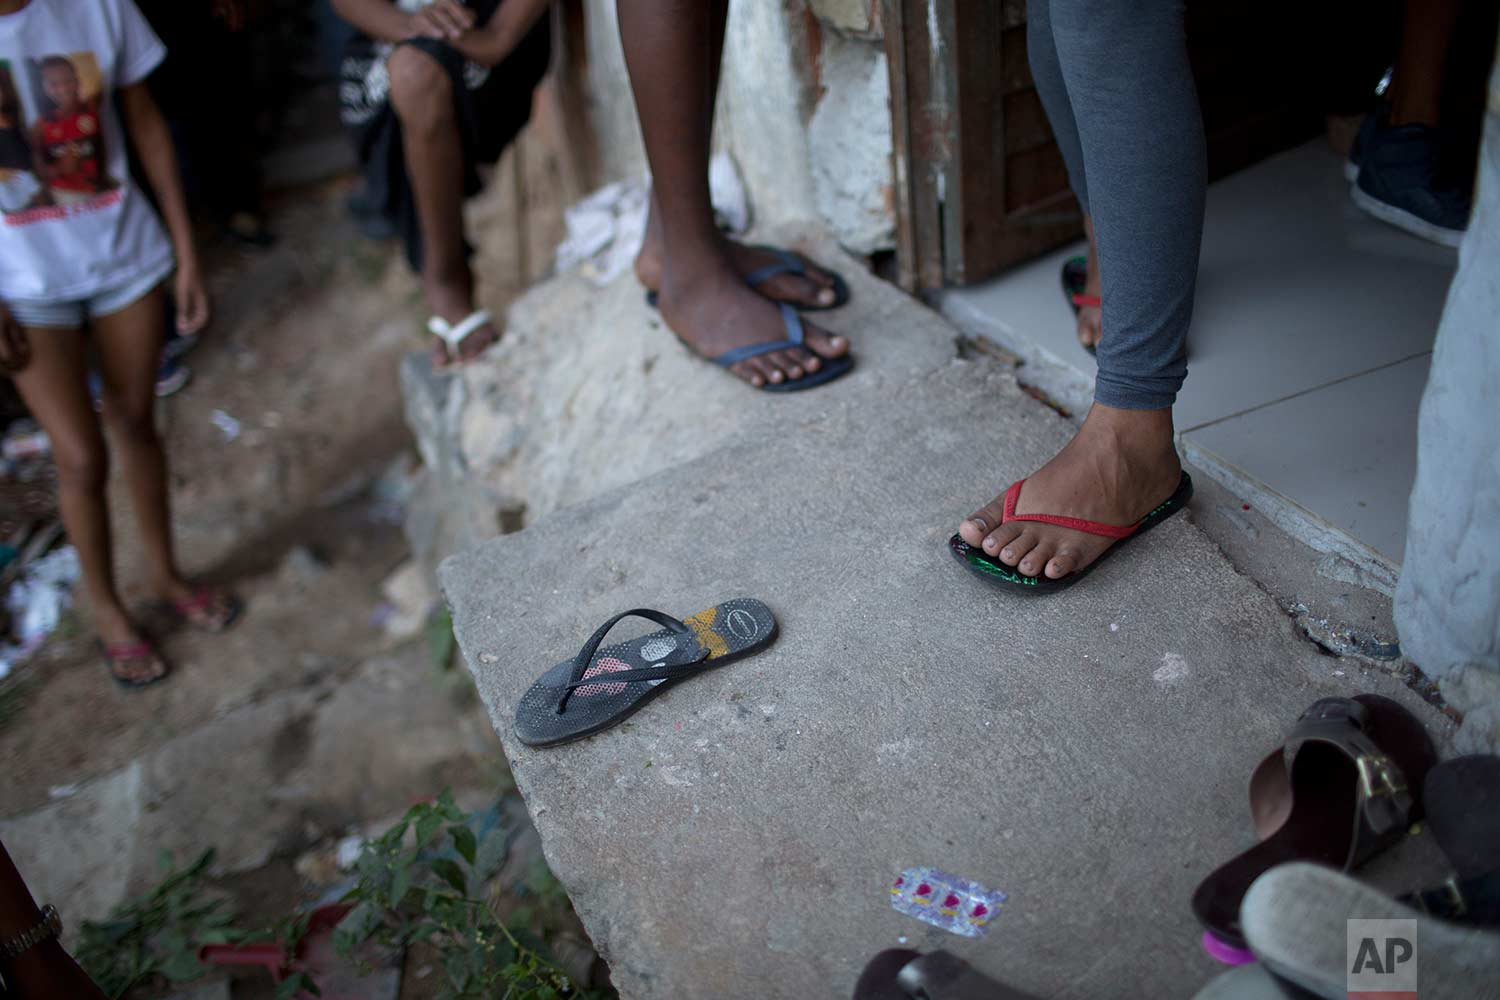 In this July 6, 2017 photo, youths stand on the doorstep where 10-year-old Vanessa dos Santos fell dead, in the Lins complex of slums, in Rio de Janeiro, Brazil. When police officers on patrol barged into the home, Vanessa's godmother and neighbor shouted for her to leave the house immediately. As Vanessa leaned down to pick up her flip-flops, shooting erupted. She died on the doorstep from a high caliber bullet wound to the head. (AP Photo/Silvia Izquierdo)